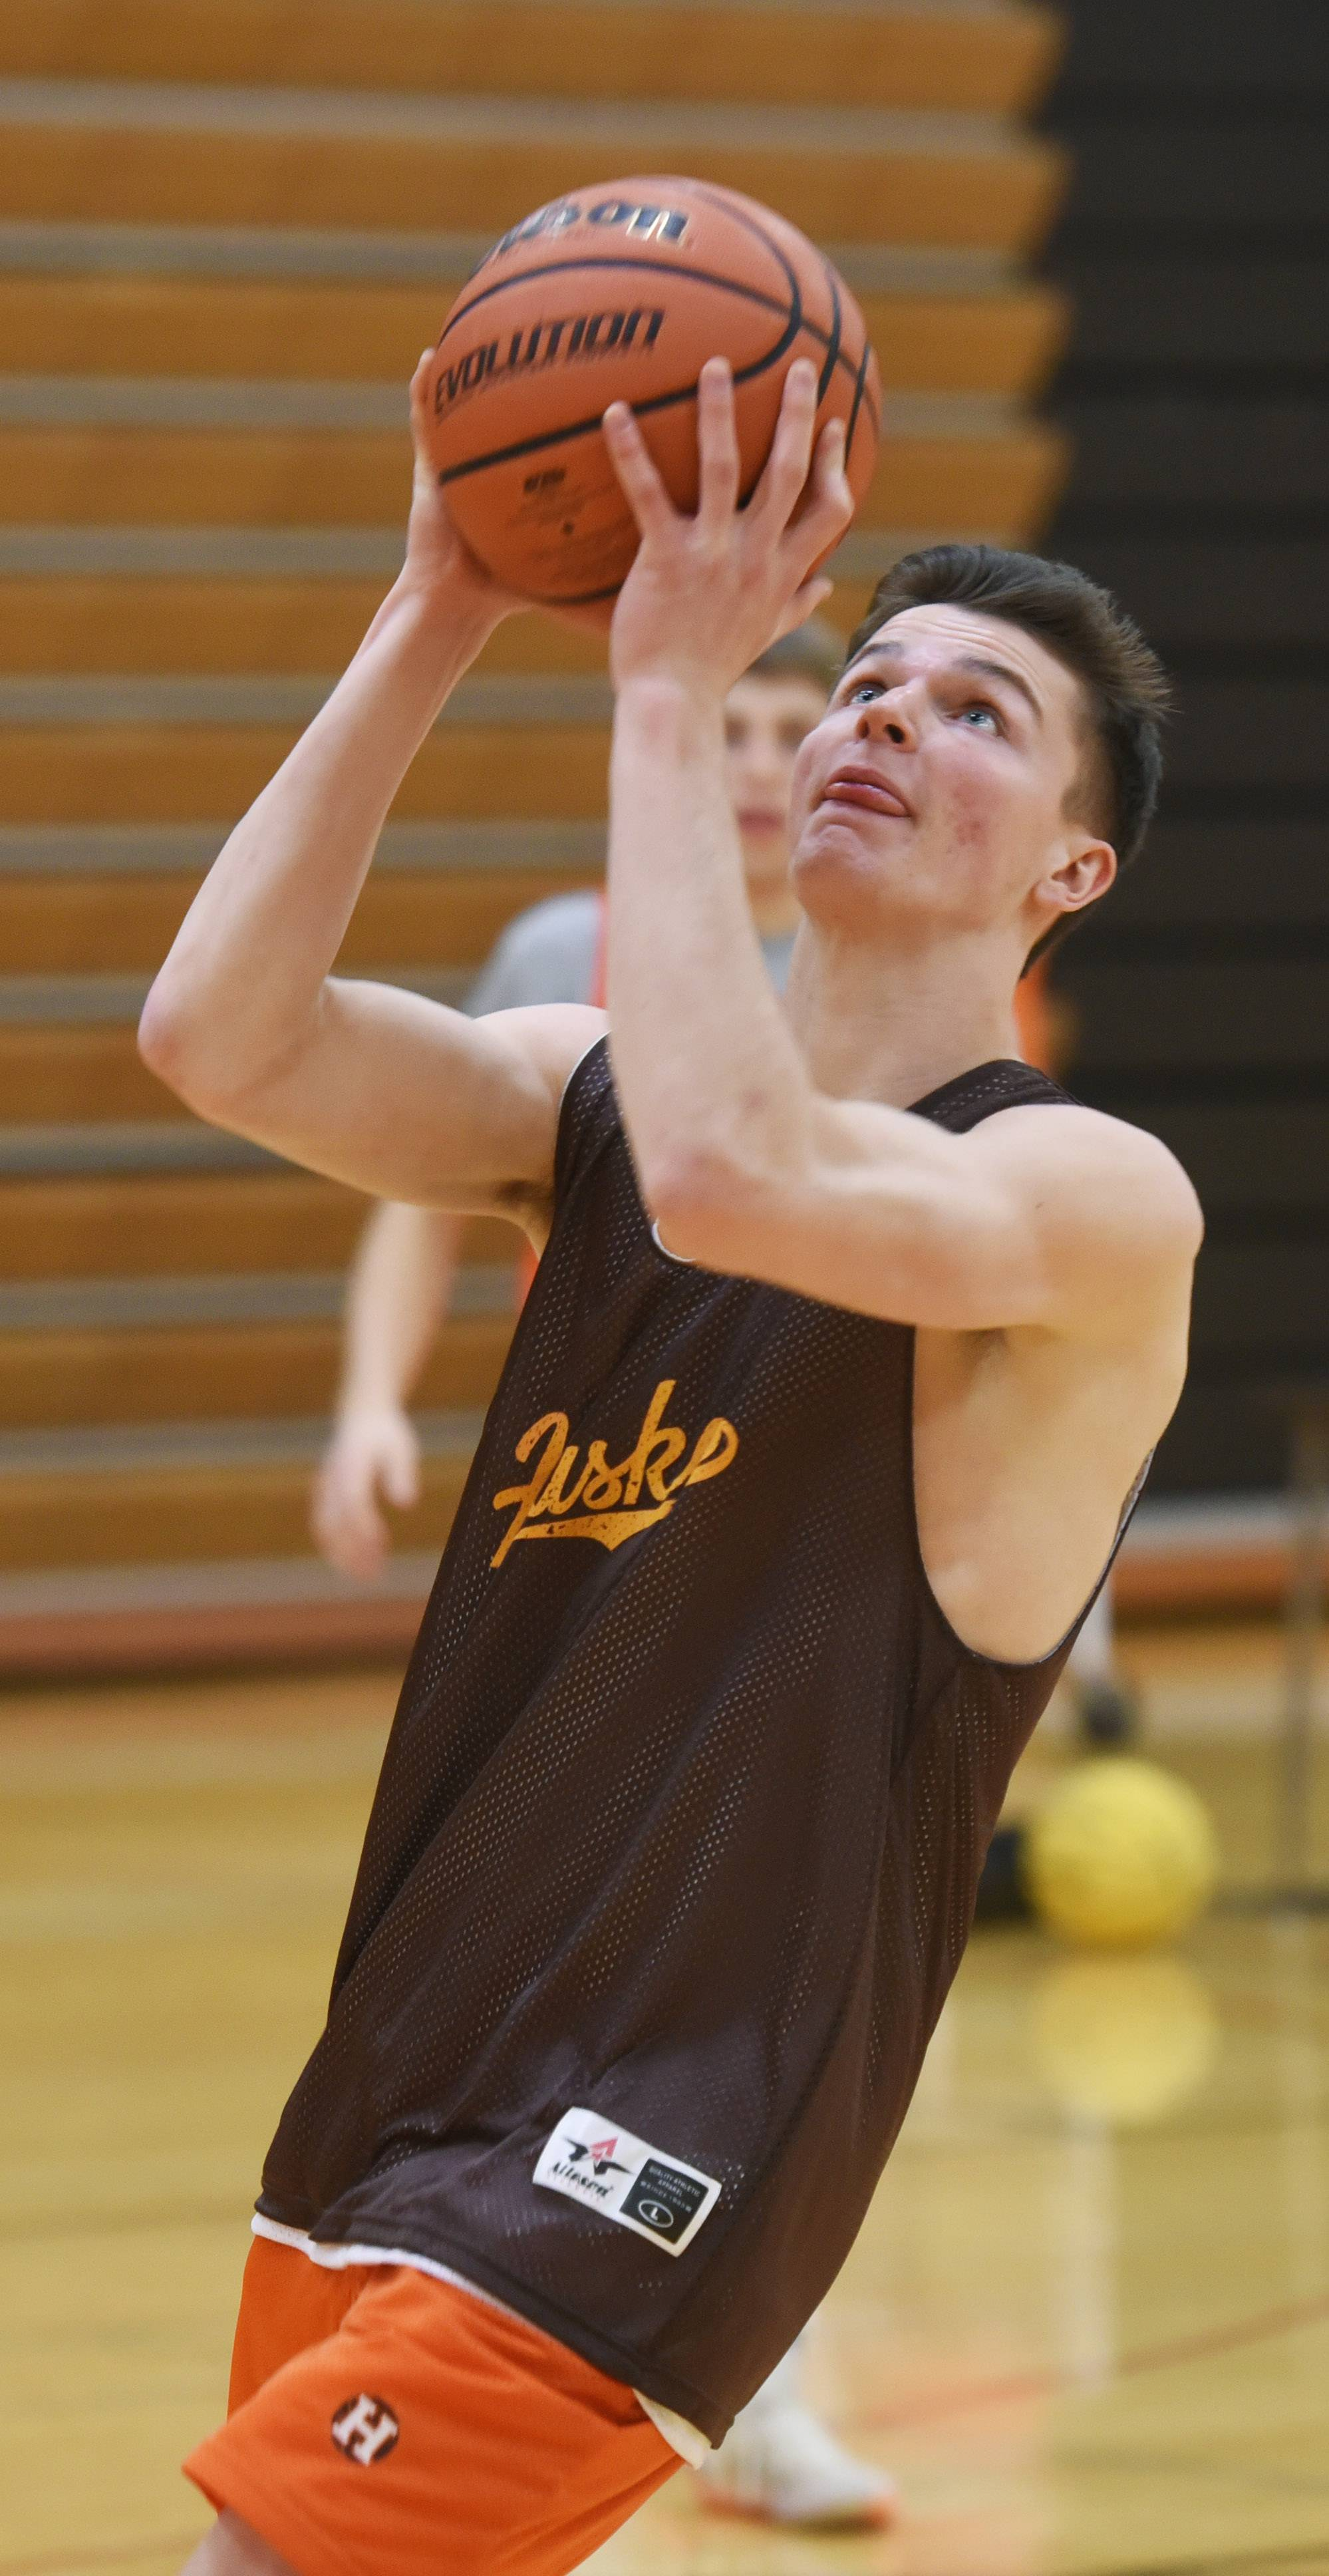 Hersey basketball player Jason Schmidt participates in a drill during practice. He was the lead in the school's Fall musical, and has been in many other theater productions as well.